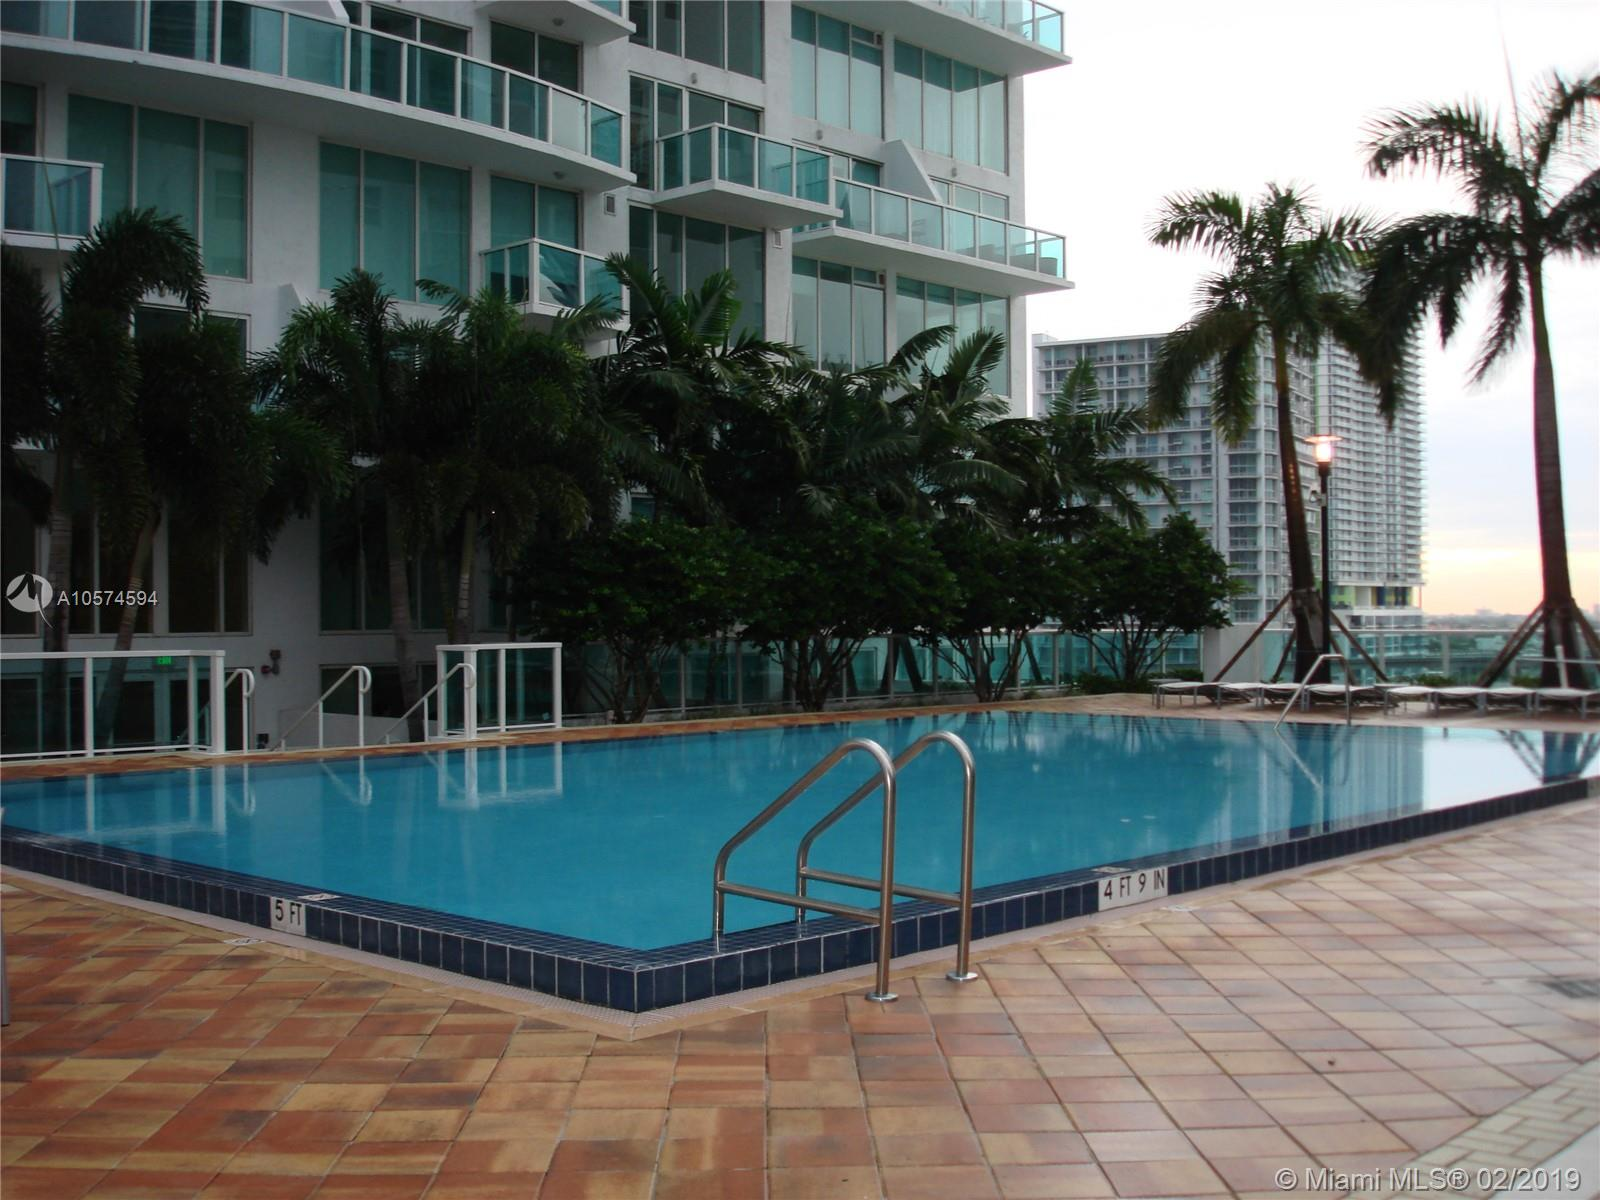 41 SE 5th Street, Miami, FL 33131-2504, Brickell on the River South #804, Brickell, Miami A10574594 image #26